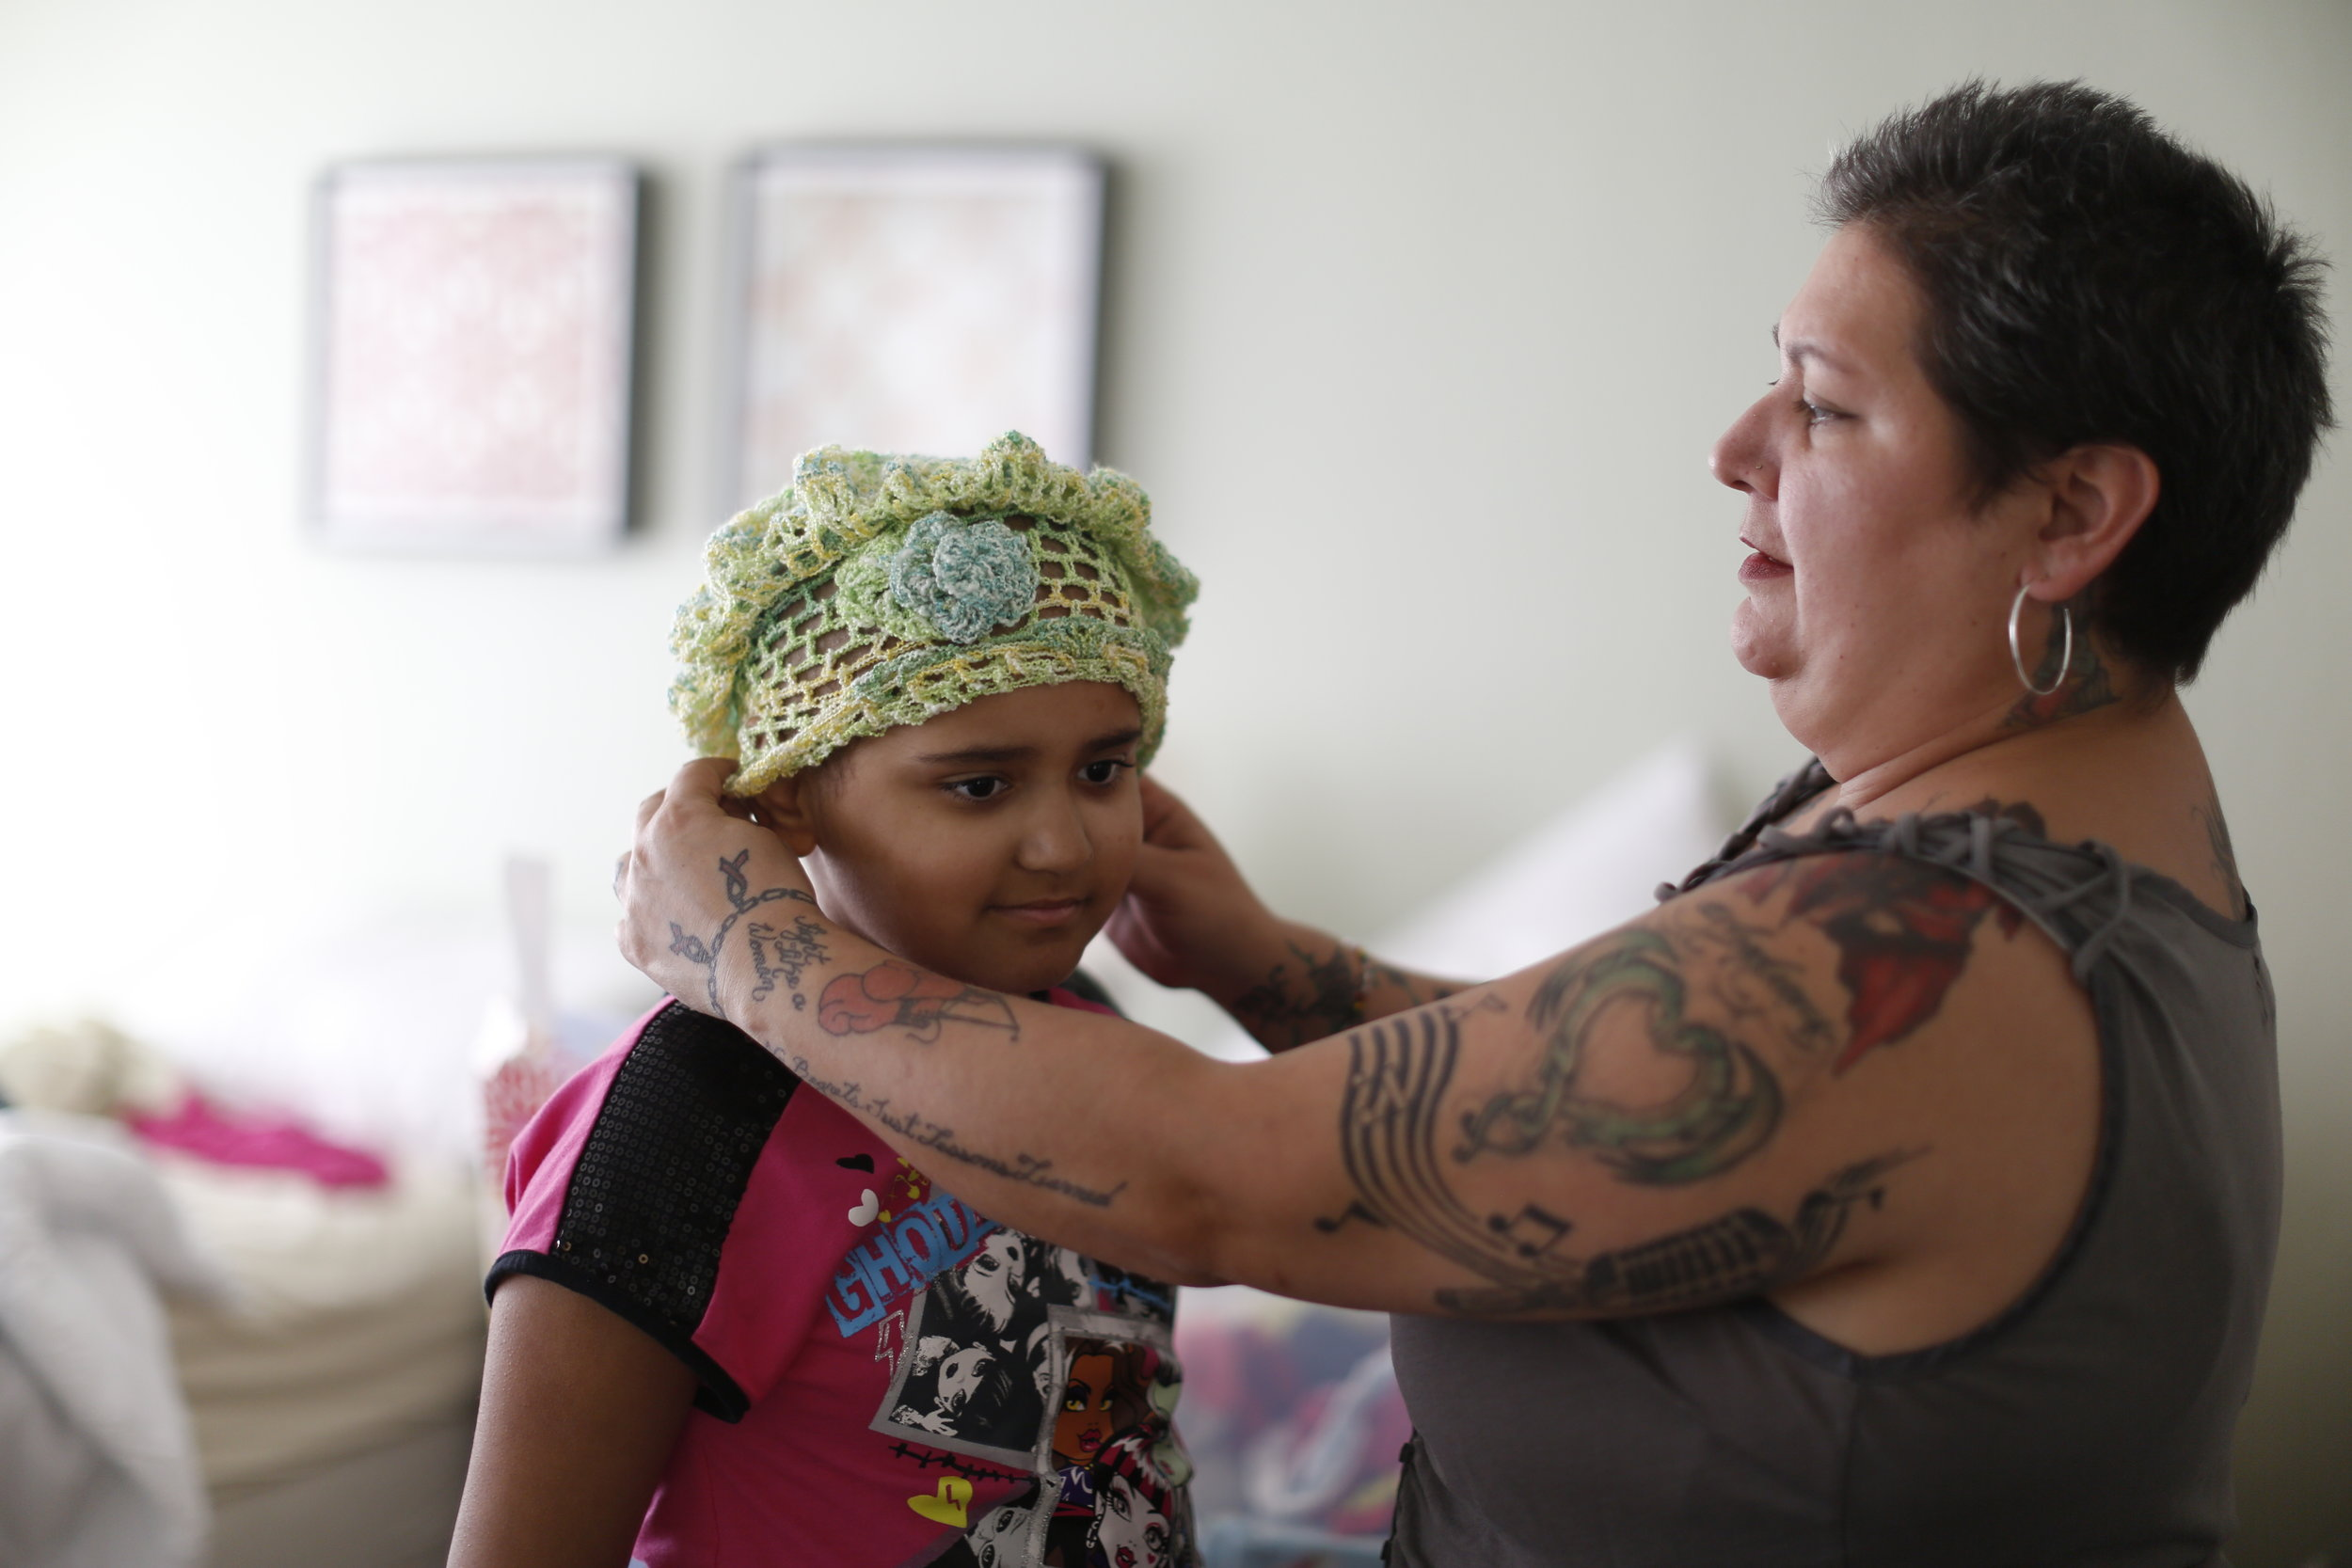 Ava Ramirez's, 9, mother puts a kitted hat on her head in their room at Family House, a free home for families of children undergoing long-term care for life-threatening illnesses in San Francisco Calif. Friday April 15, 2016.